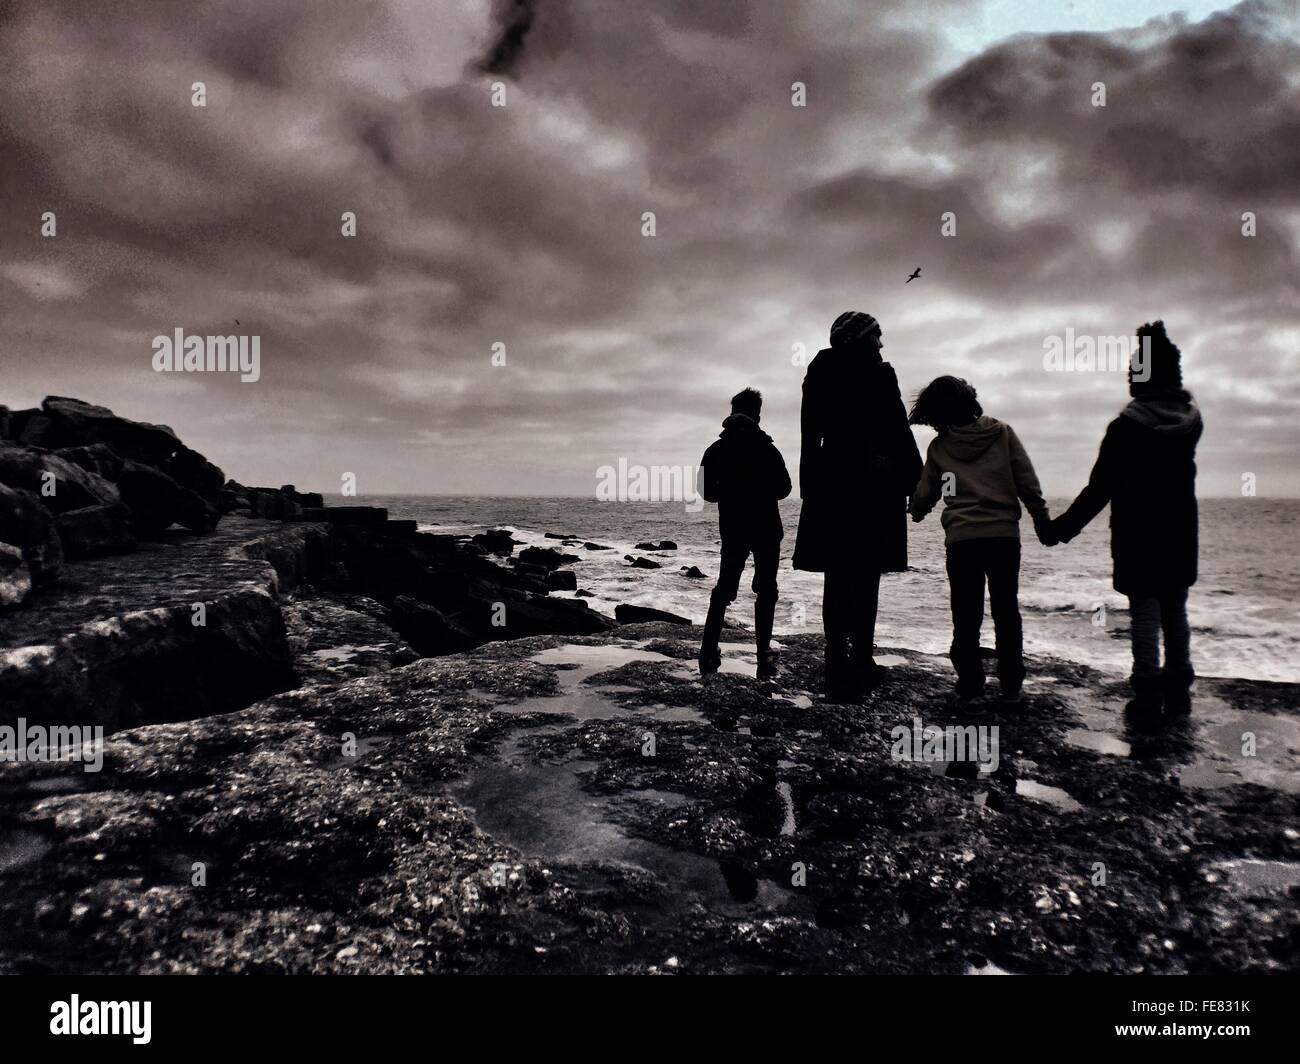 Silhouette Of Family Standing At Beach Coastline - Stock Image